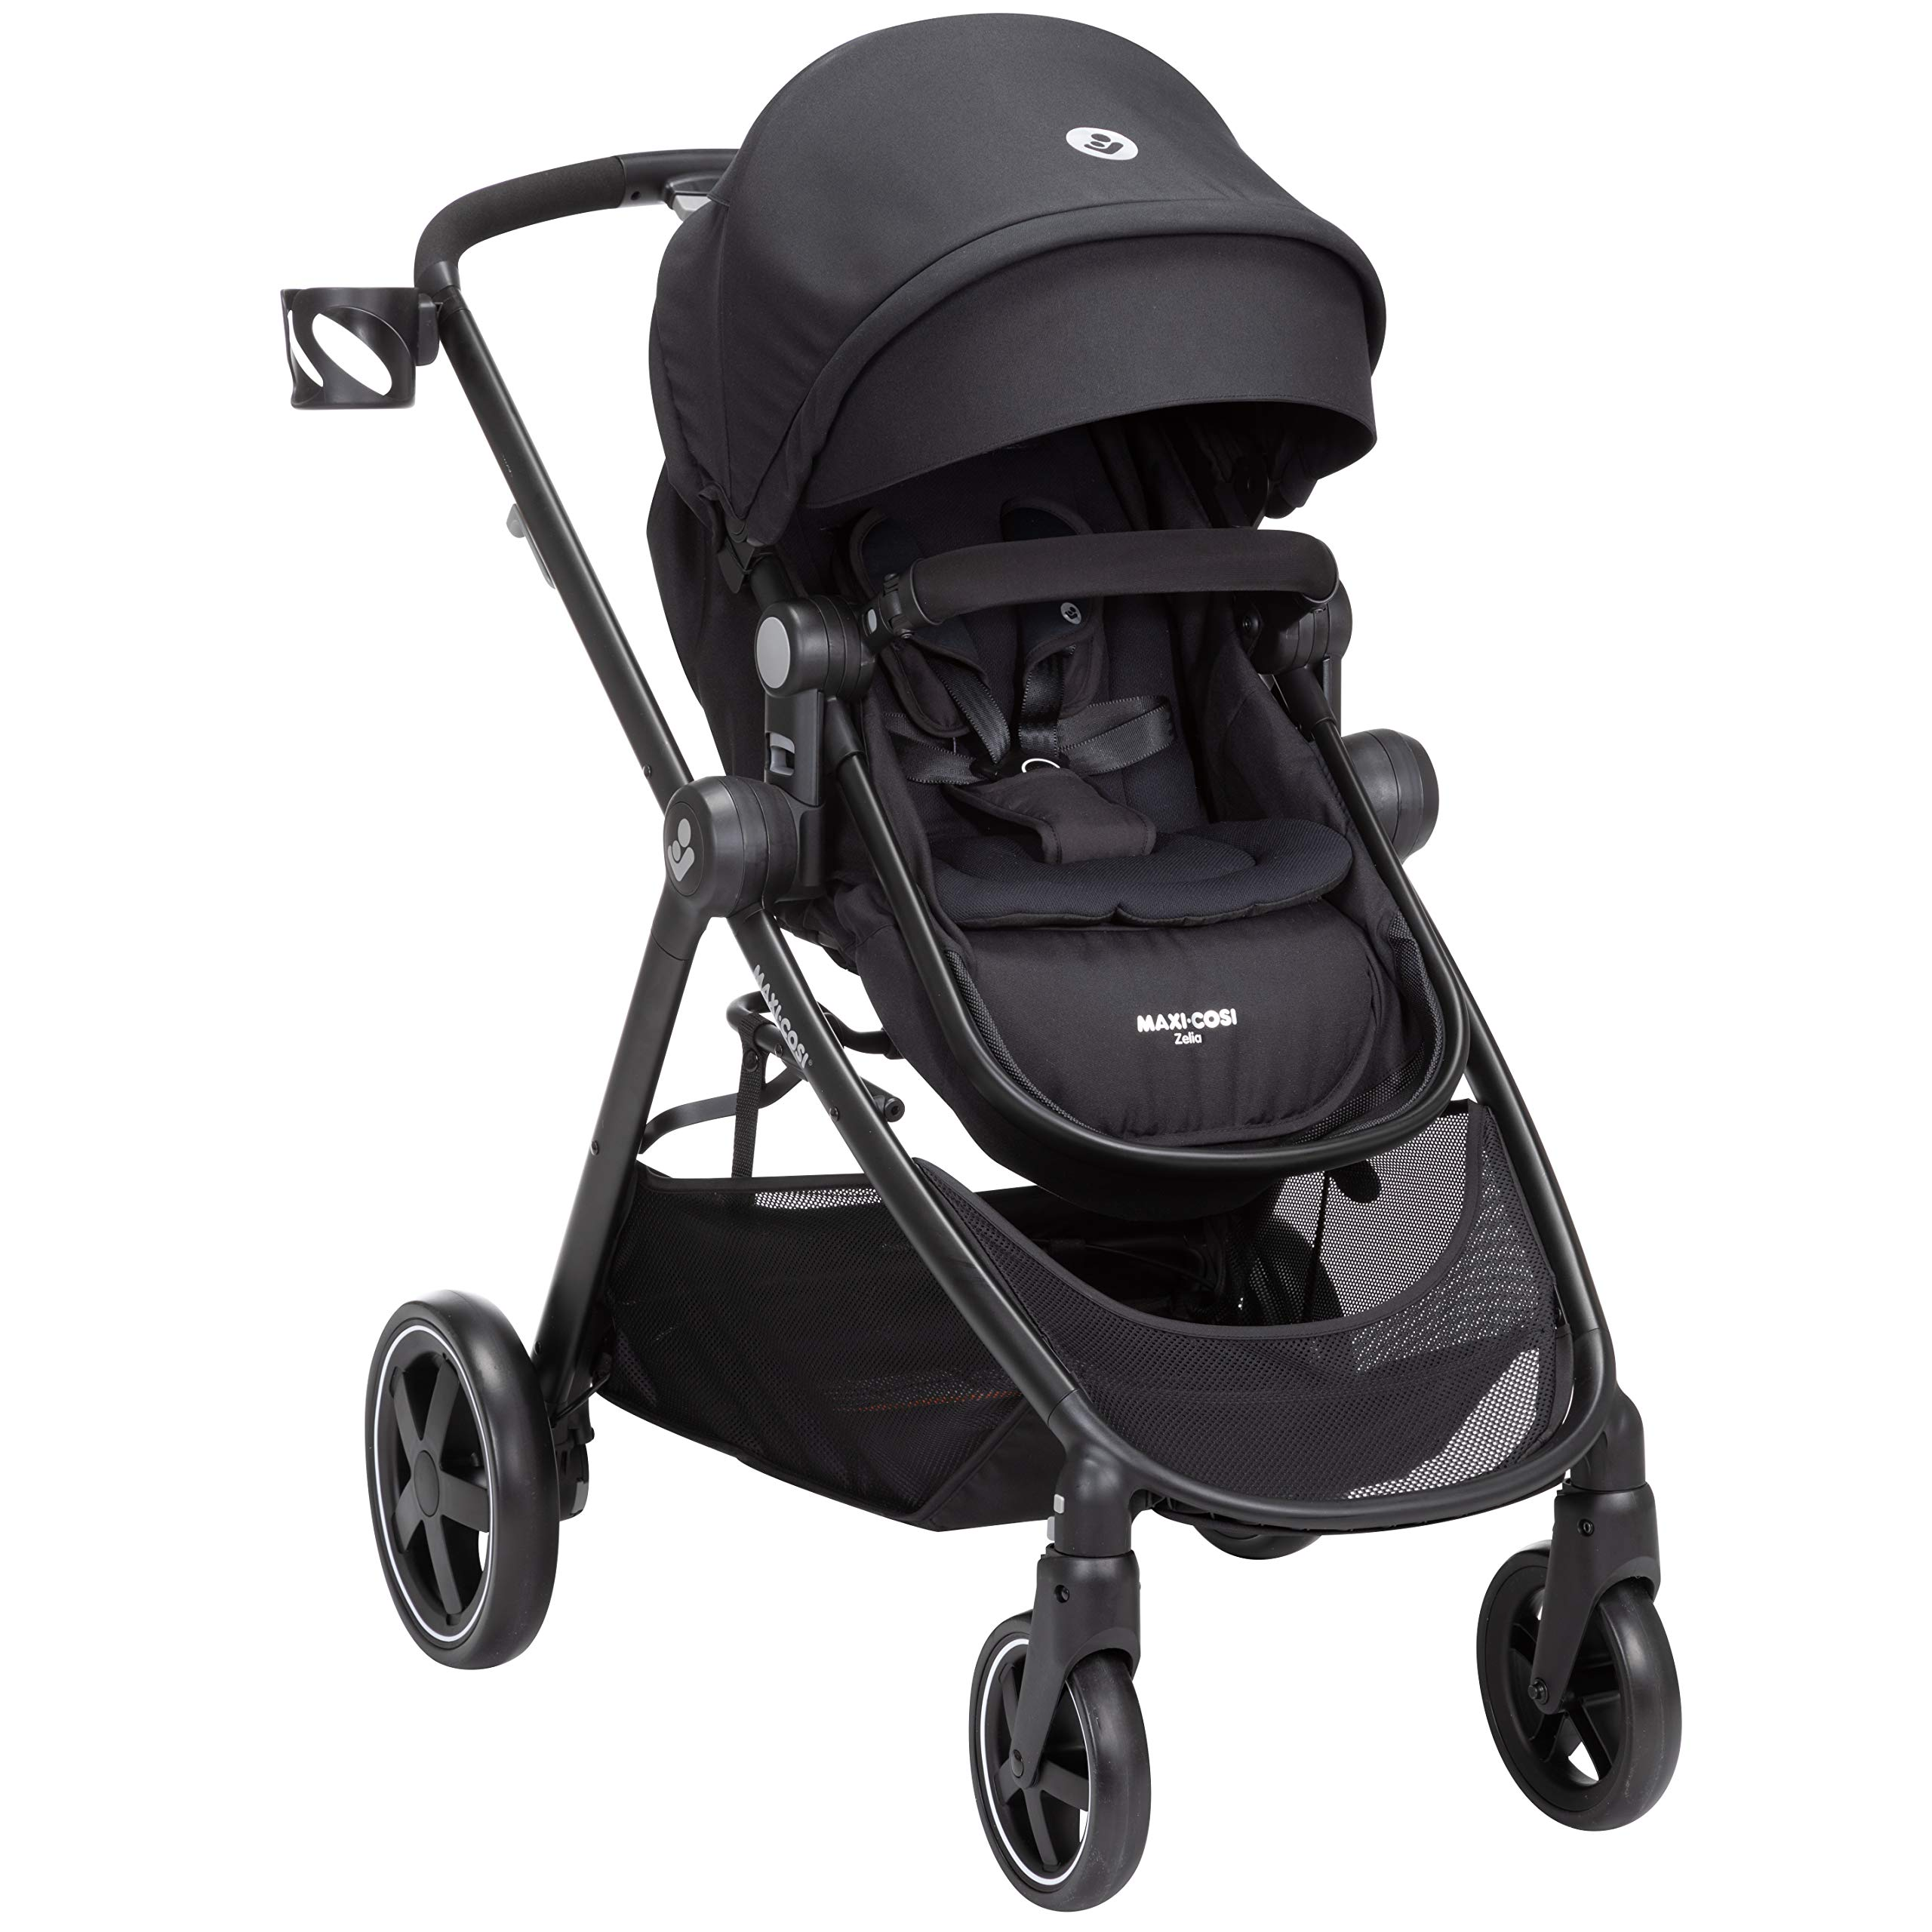 Maxi-Cosi Zelia Stroller, Night Black, One Size by Maxi-Cosi (Image #1)